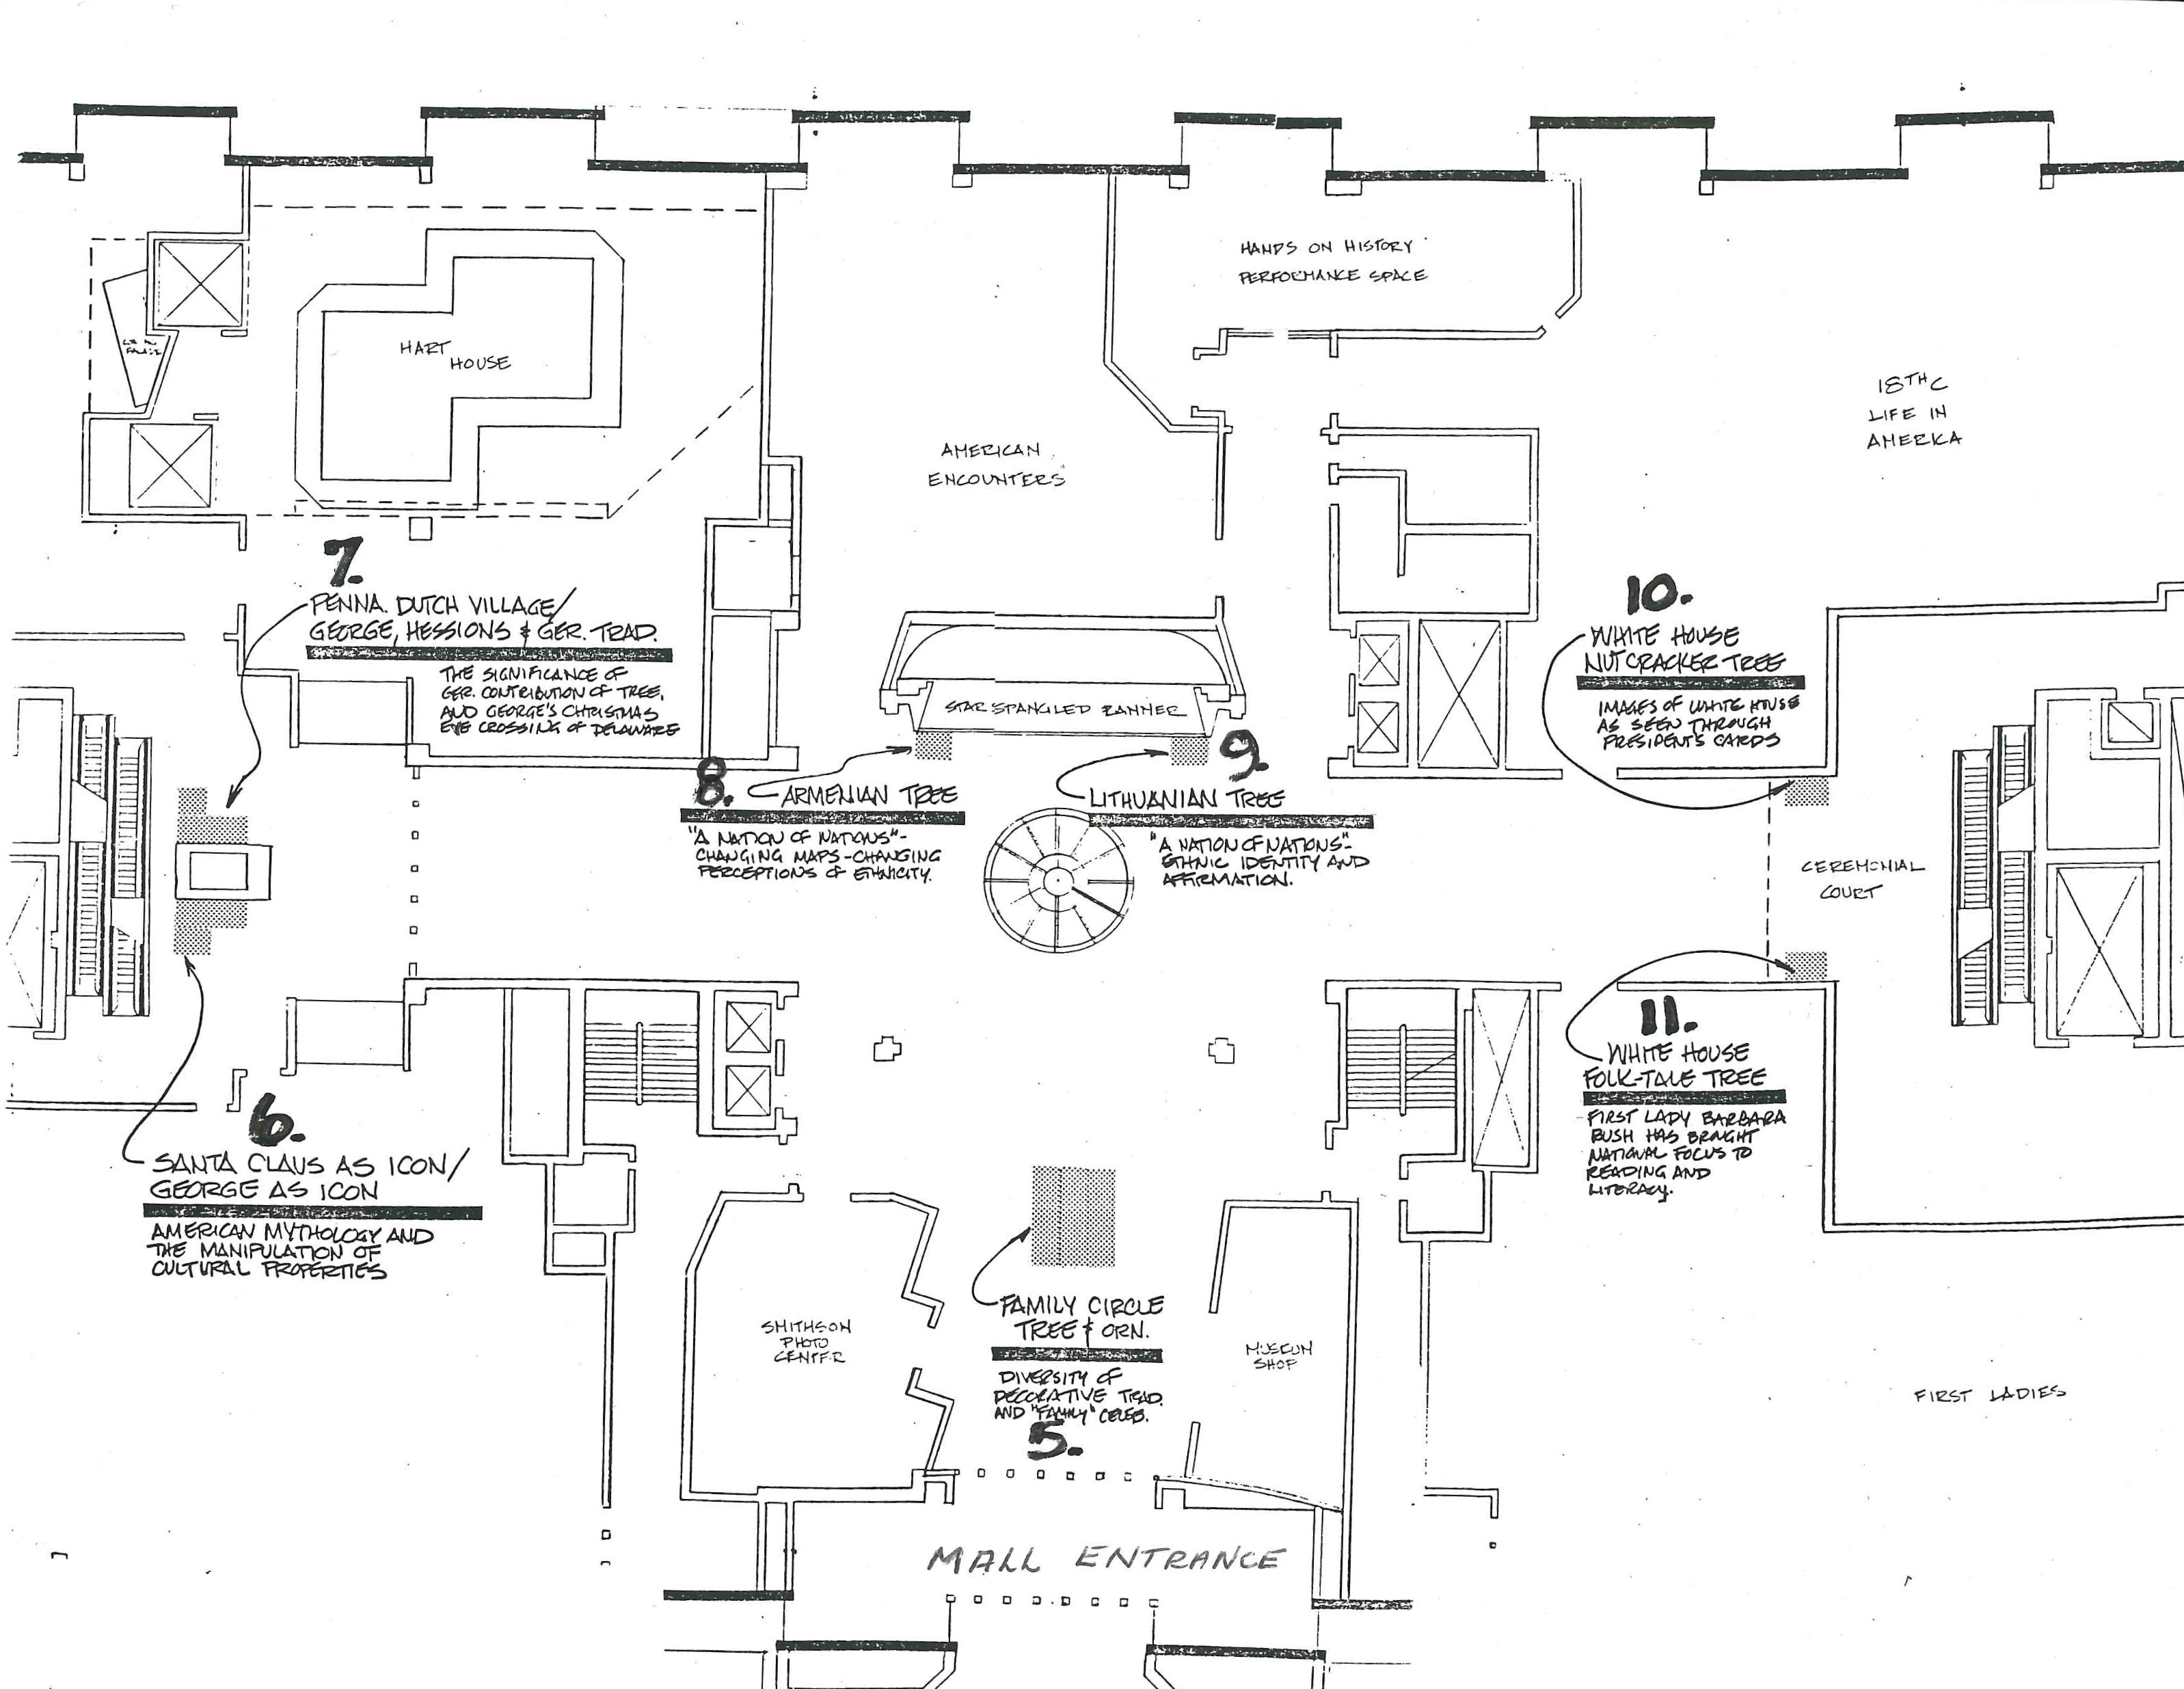 Trees of Christmas - Floor plans, 1992. Smithsonian Institution Archives, Accession 96-001: National